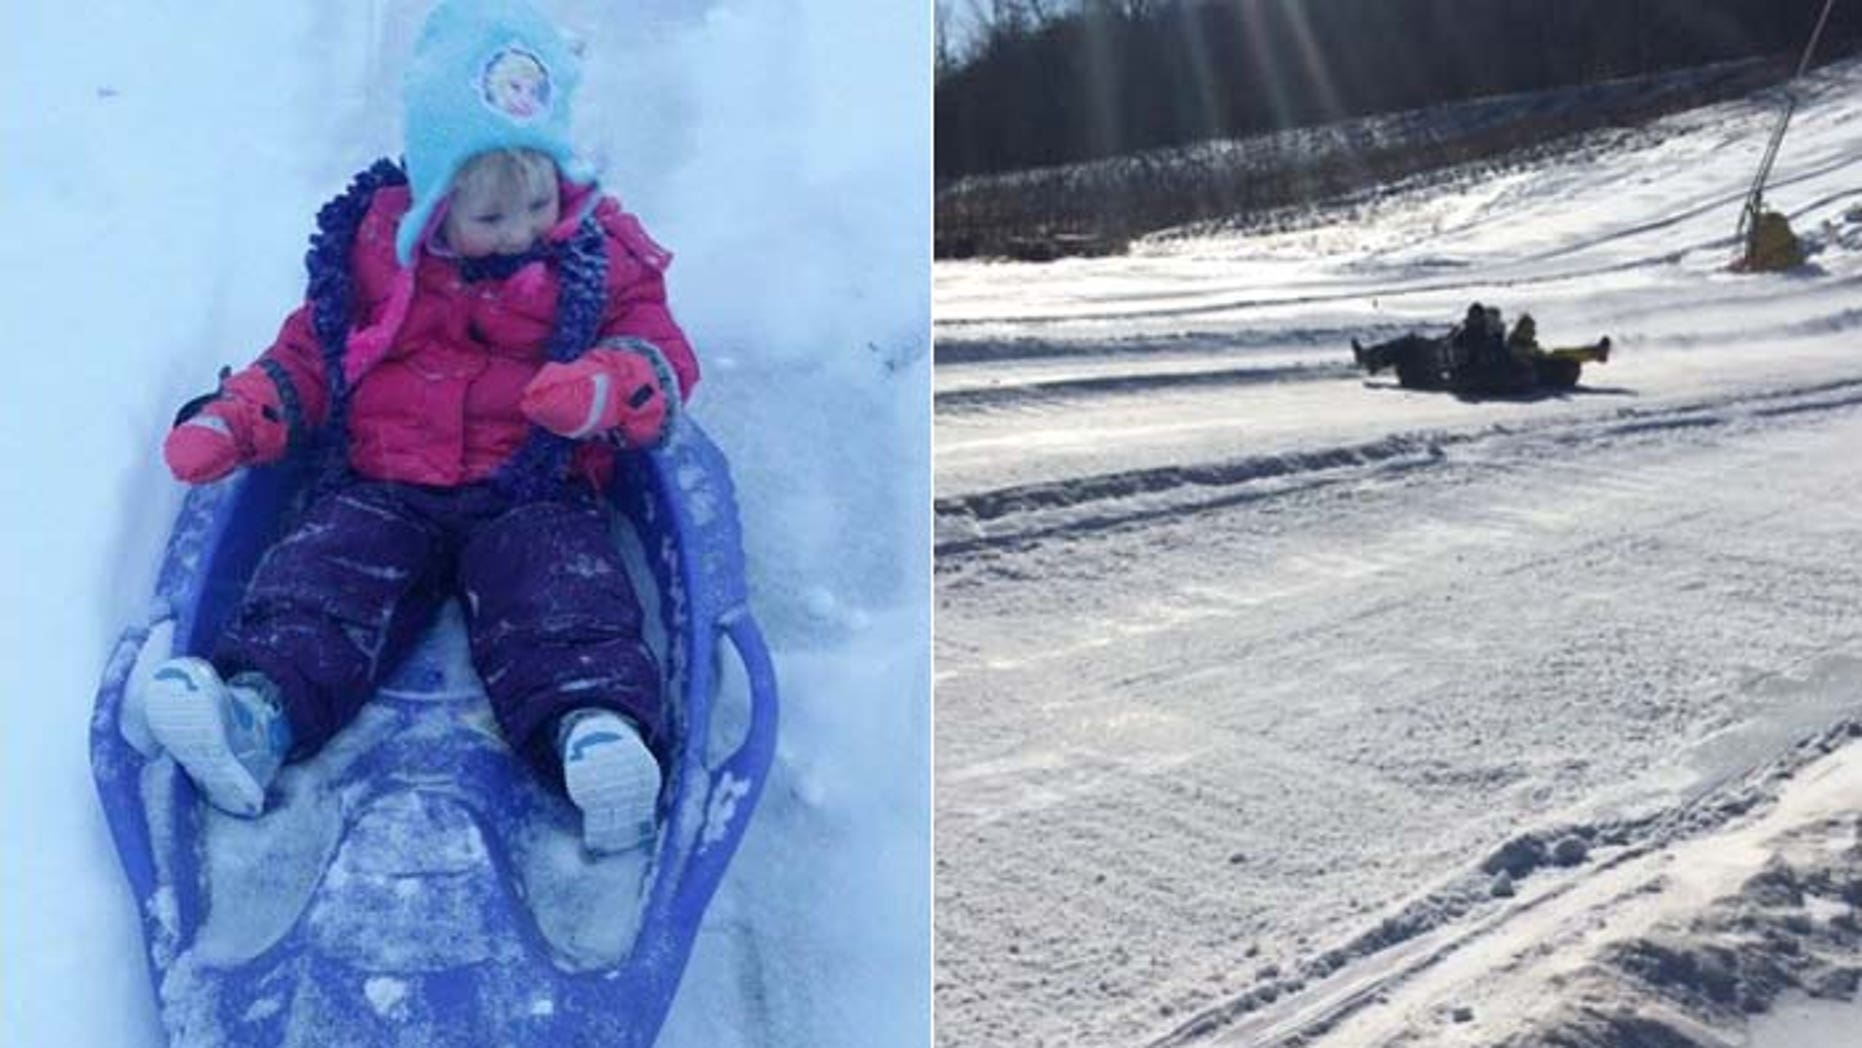 Kids in Dubuque, Iowa, like Ava Van Walbeek, 2, won't be sledding on public property under a new ordinance. (Courtesy: Micole Van Walbeek, Natasha Sayles)